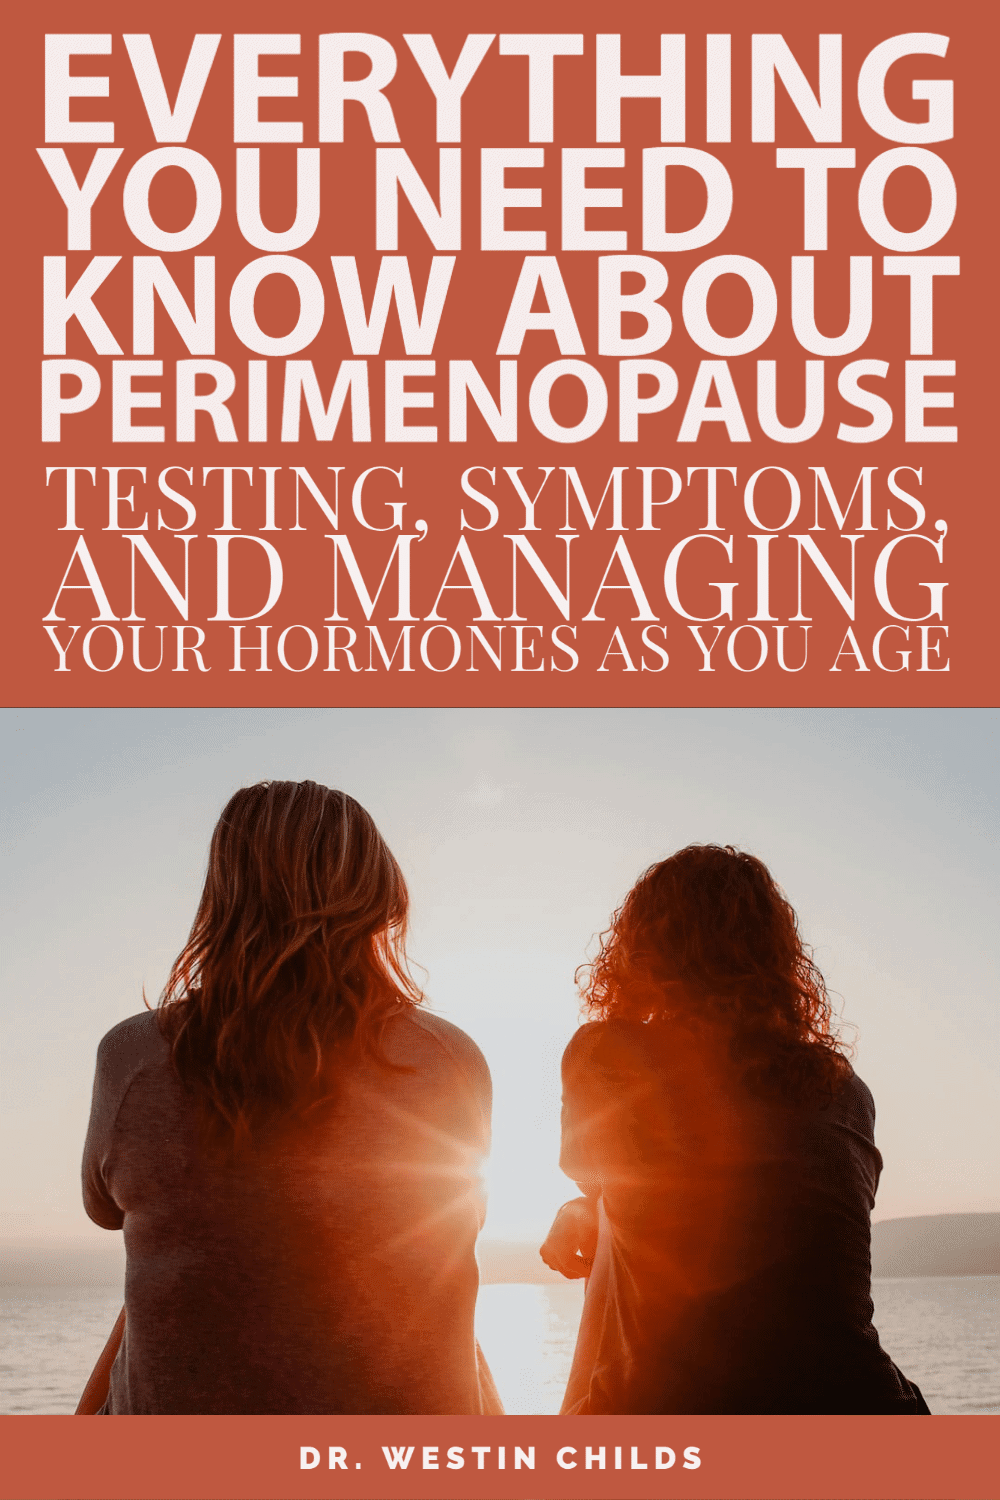 the complete guide to perimenopause in women